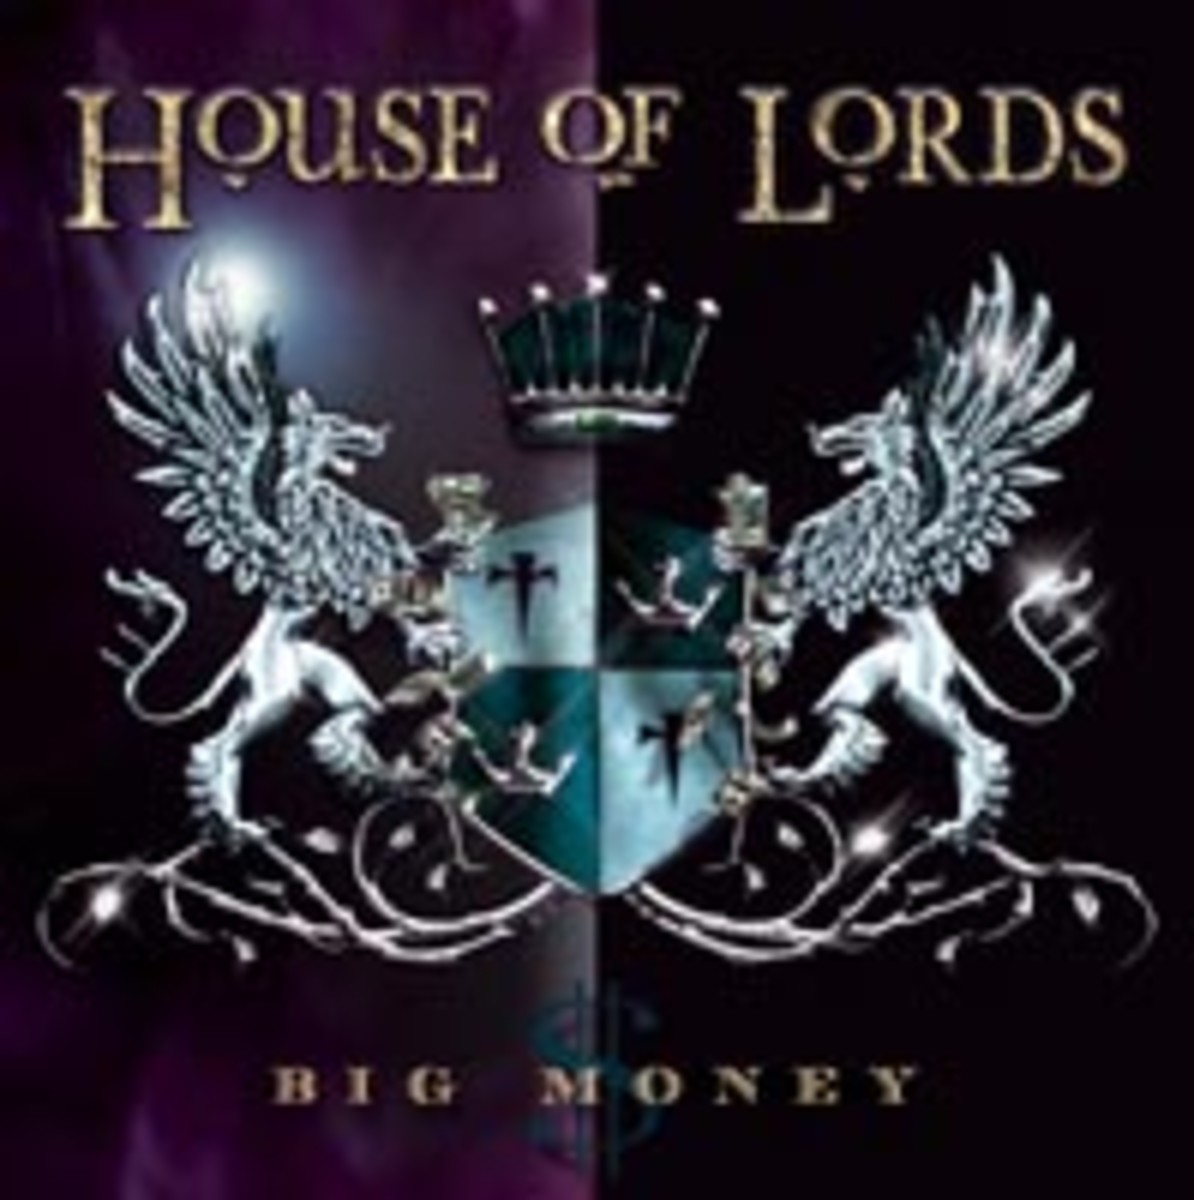 House of Lords Big Money